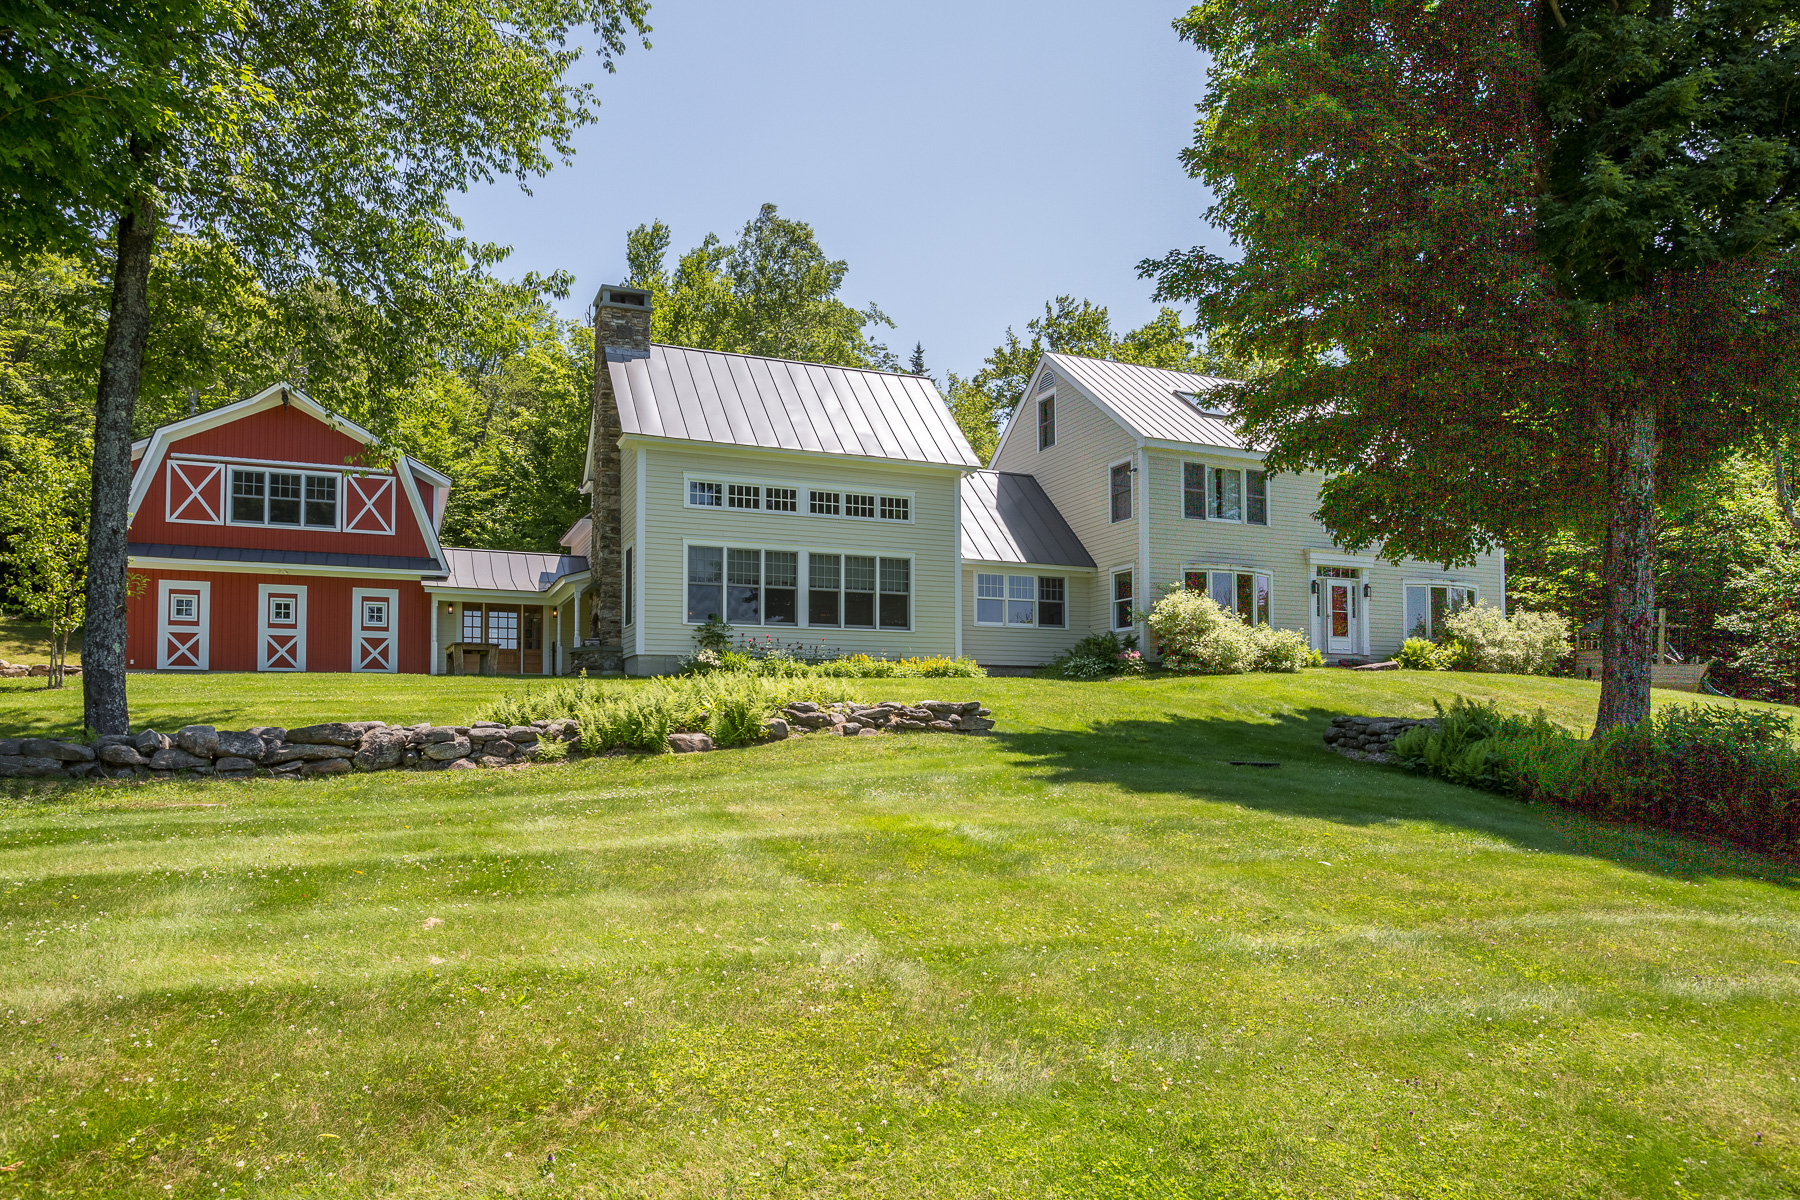 Single Family Home for Sale at High Meadow - A Private Vermont Estate 444 Tin Shanty Rd Shrewsbury, Vermont, 05738 United States